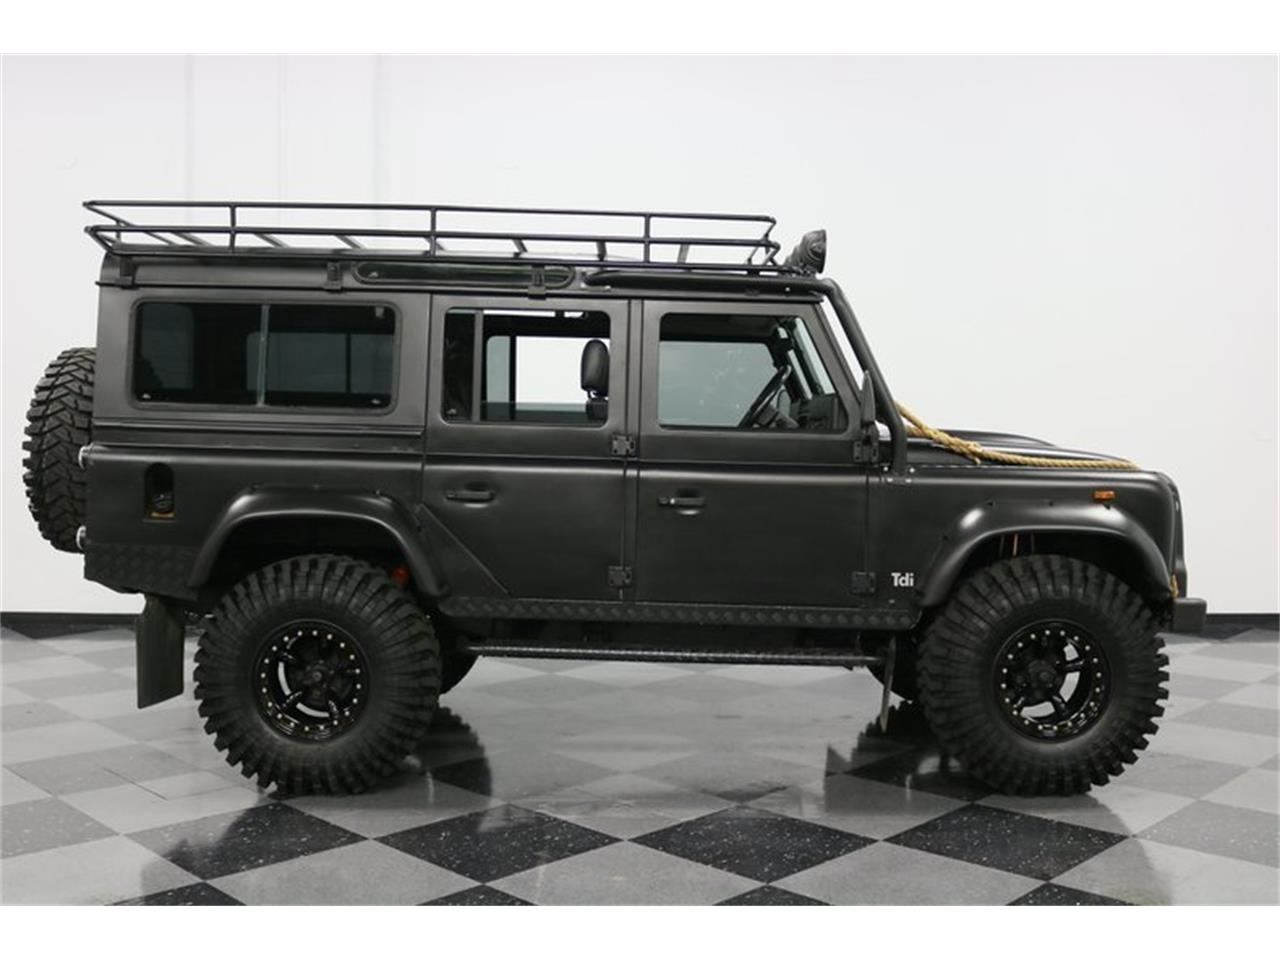 Large Picture of '91 Defender located in Texas - $114,995.00 Offered by Streetside Classics - Dallas / Fort Worth - PD5S